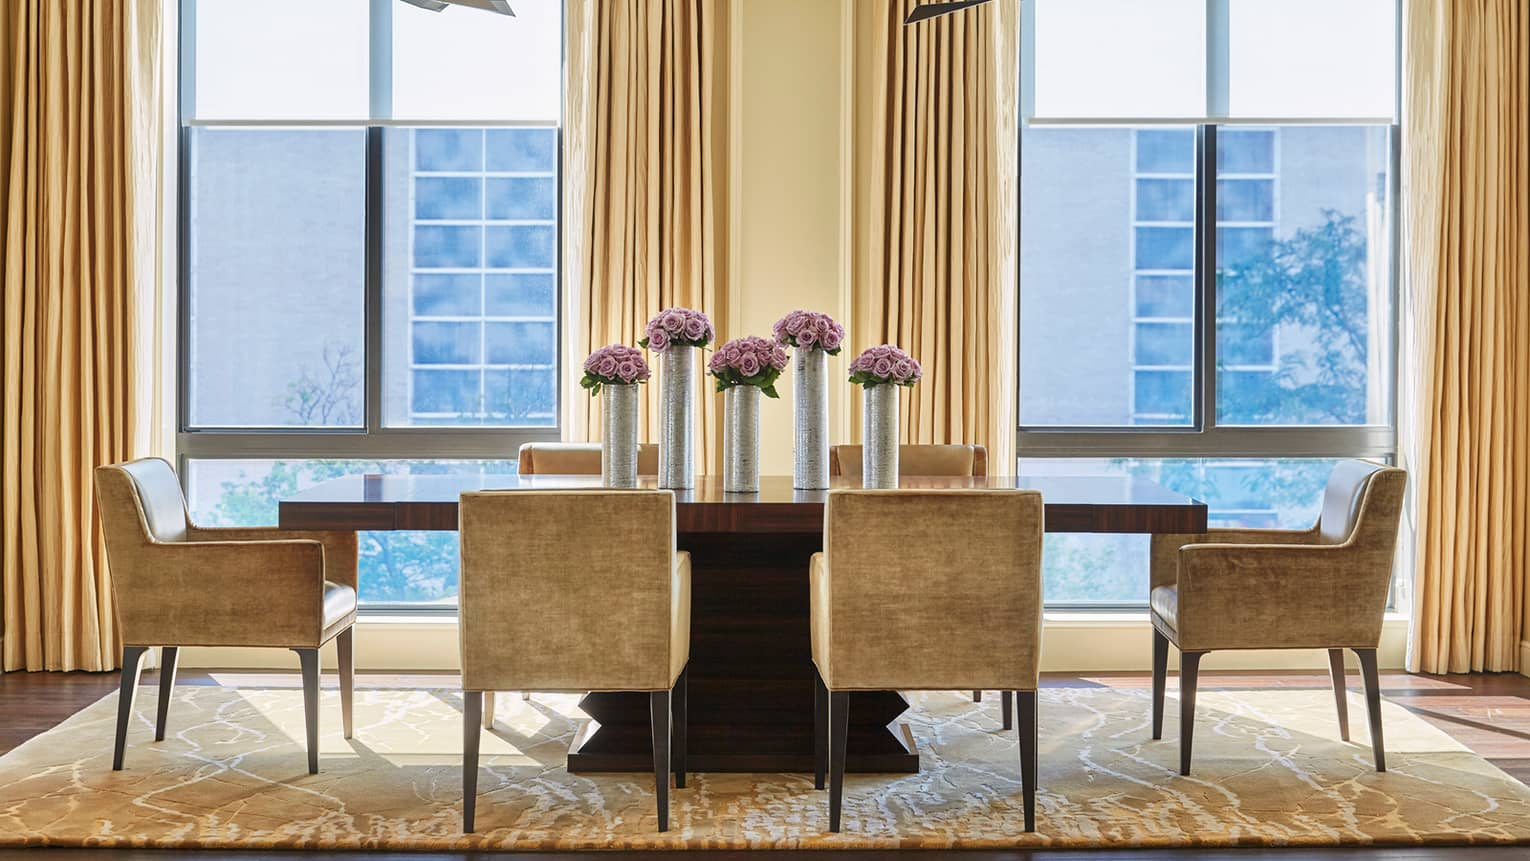 Imperial Suite modern dining table with golden brown velvet dining chairs around long wood table with tall silver vases, purple flowers